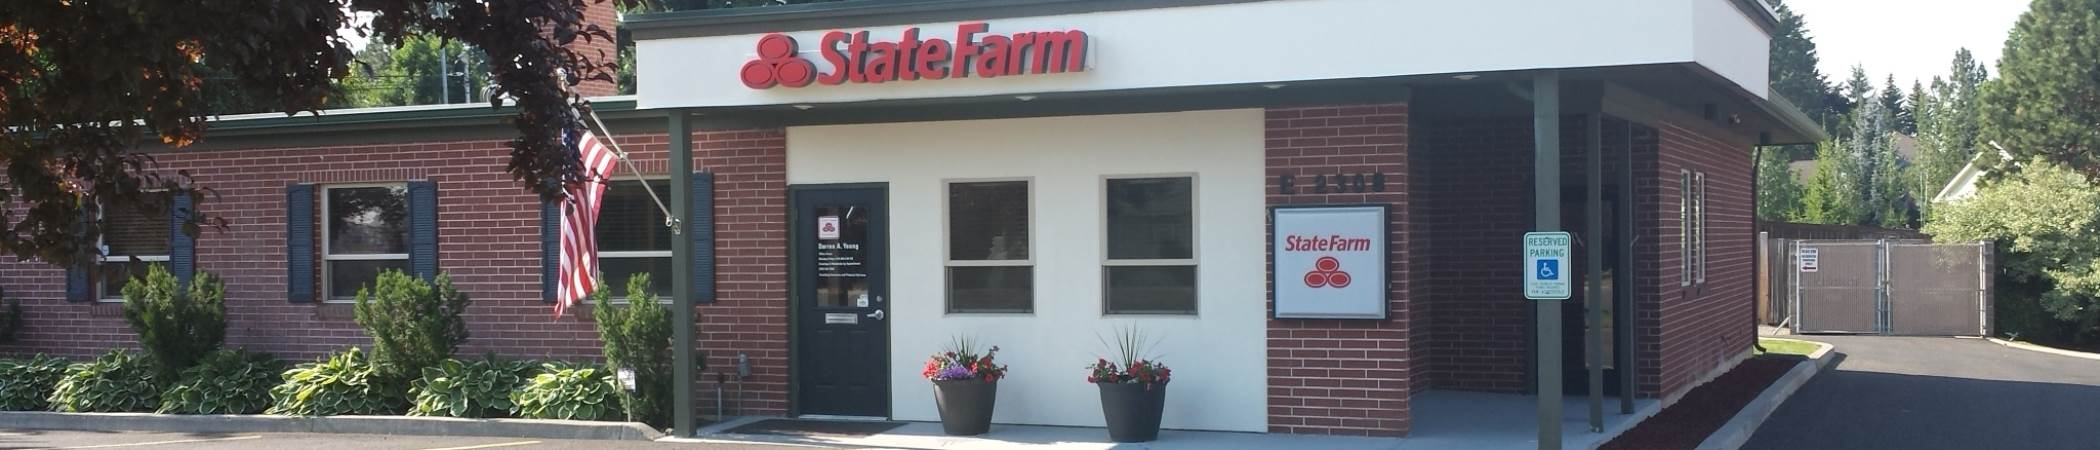 Darren Young State Farm Insurance in Spokane WA | Home, Auto Insurance & more